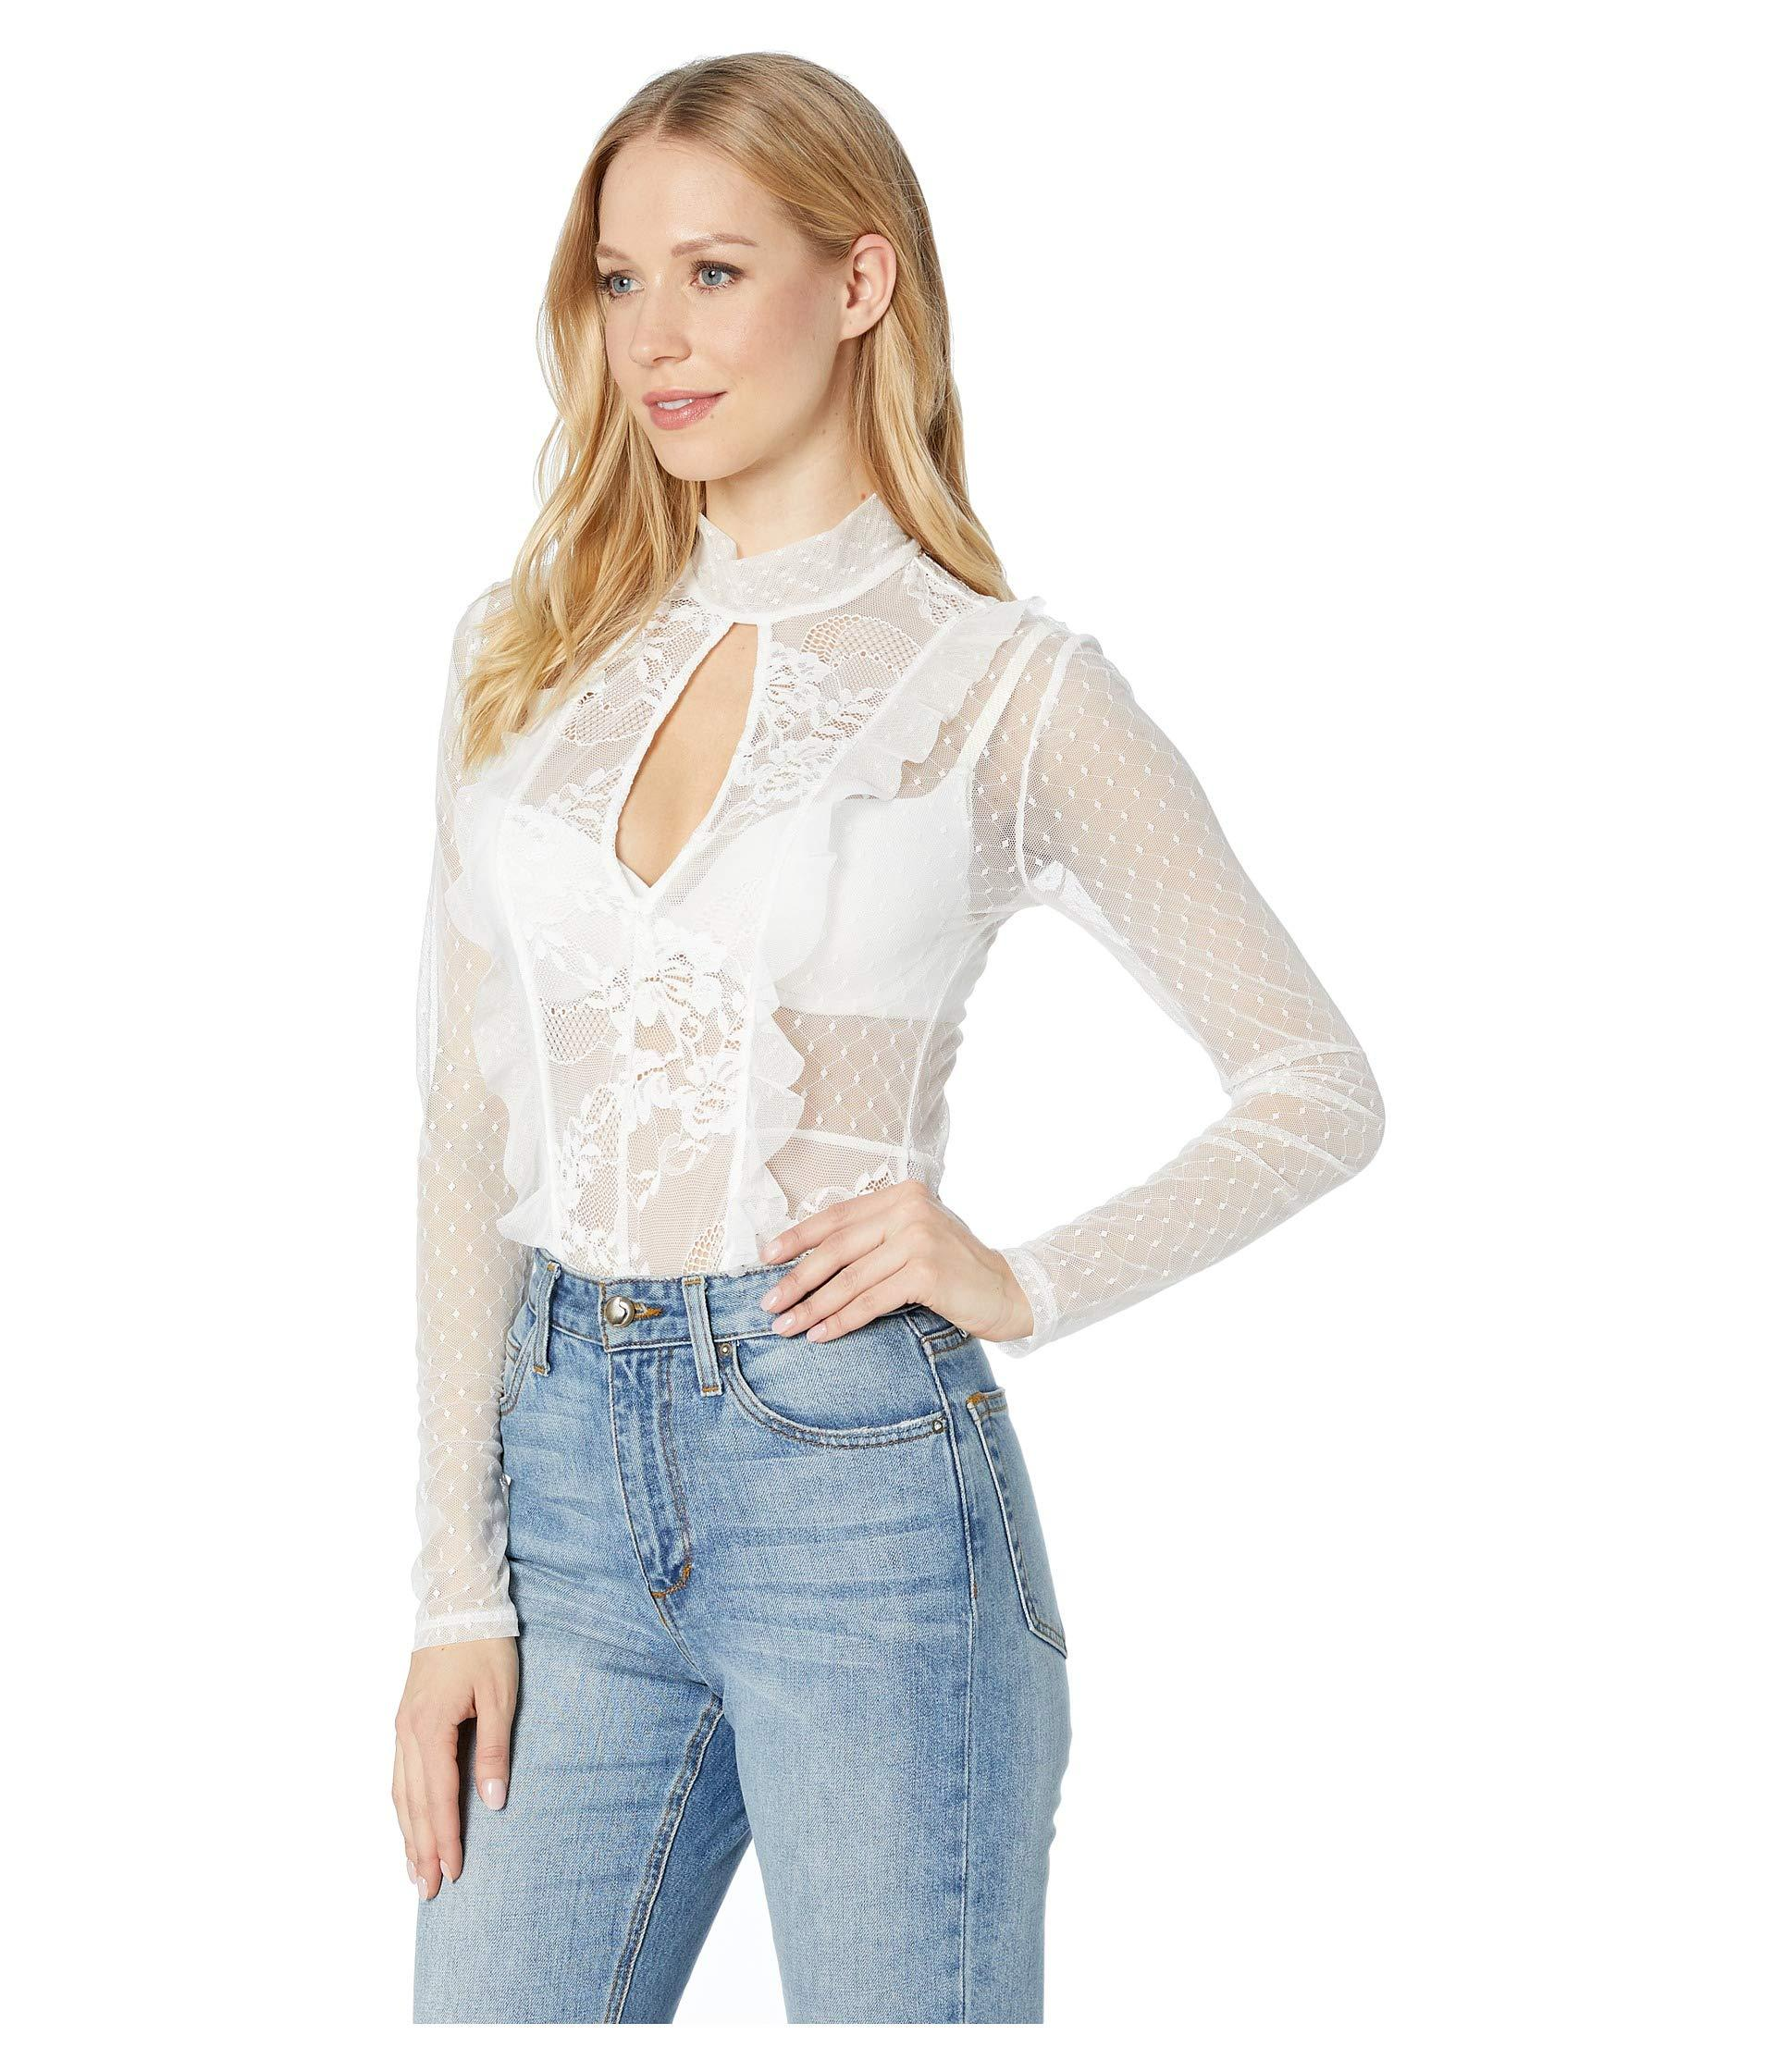 ce2d41897b Lyst - BCBGMAXAZRIA Long Sleeve Lace Cut Out Bodysuit (optic White) Women s  Jumpsuit   Rompers One Piece in White